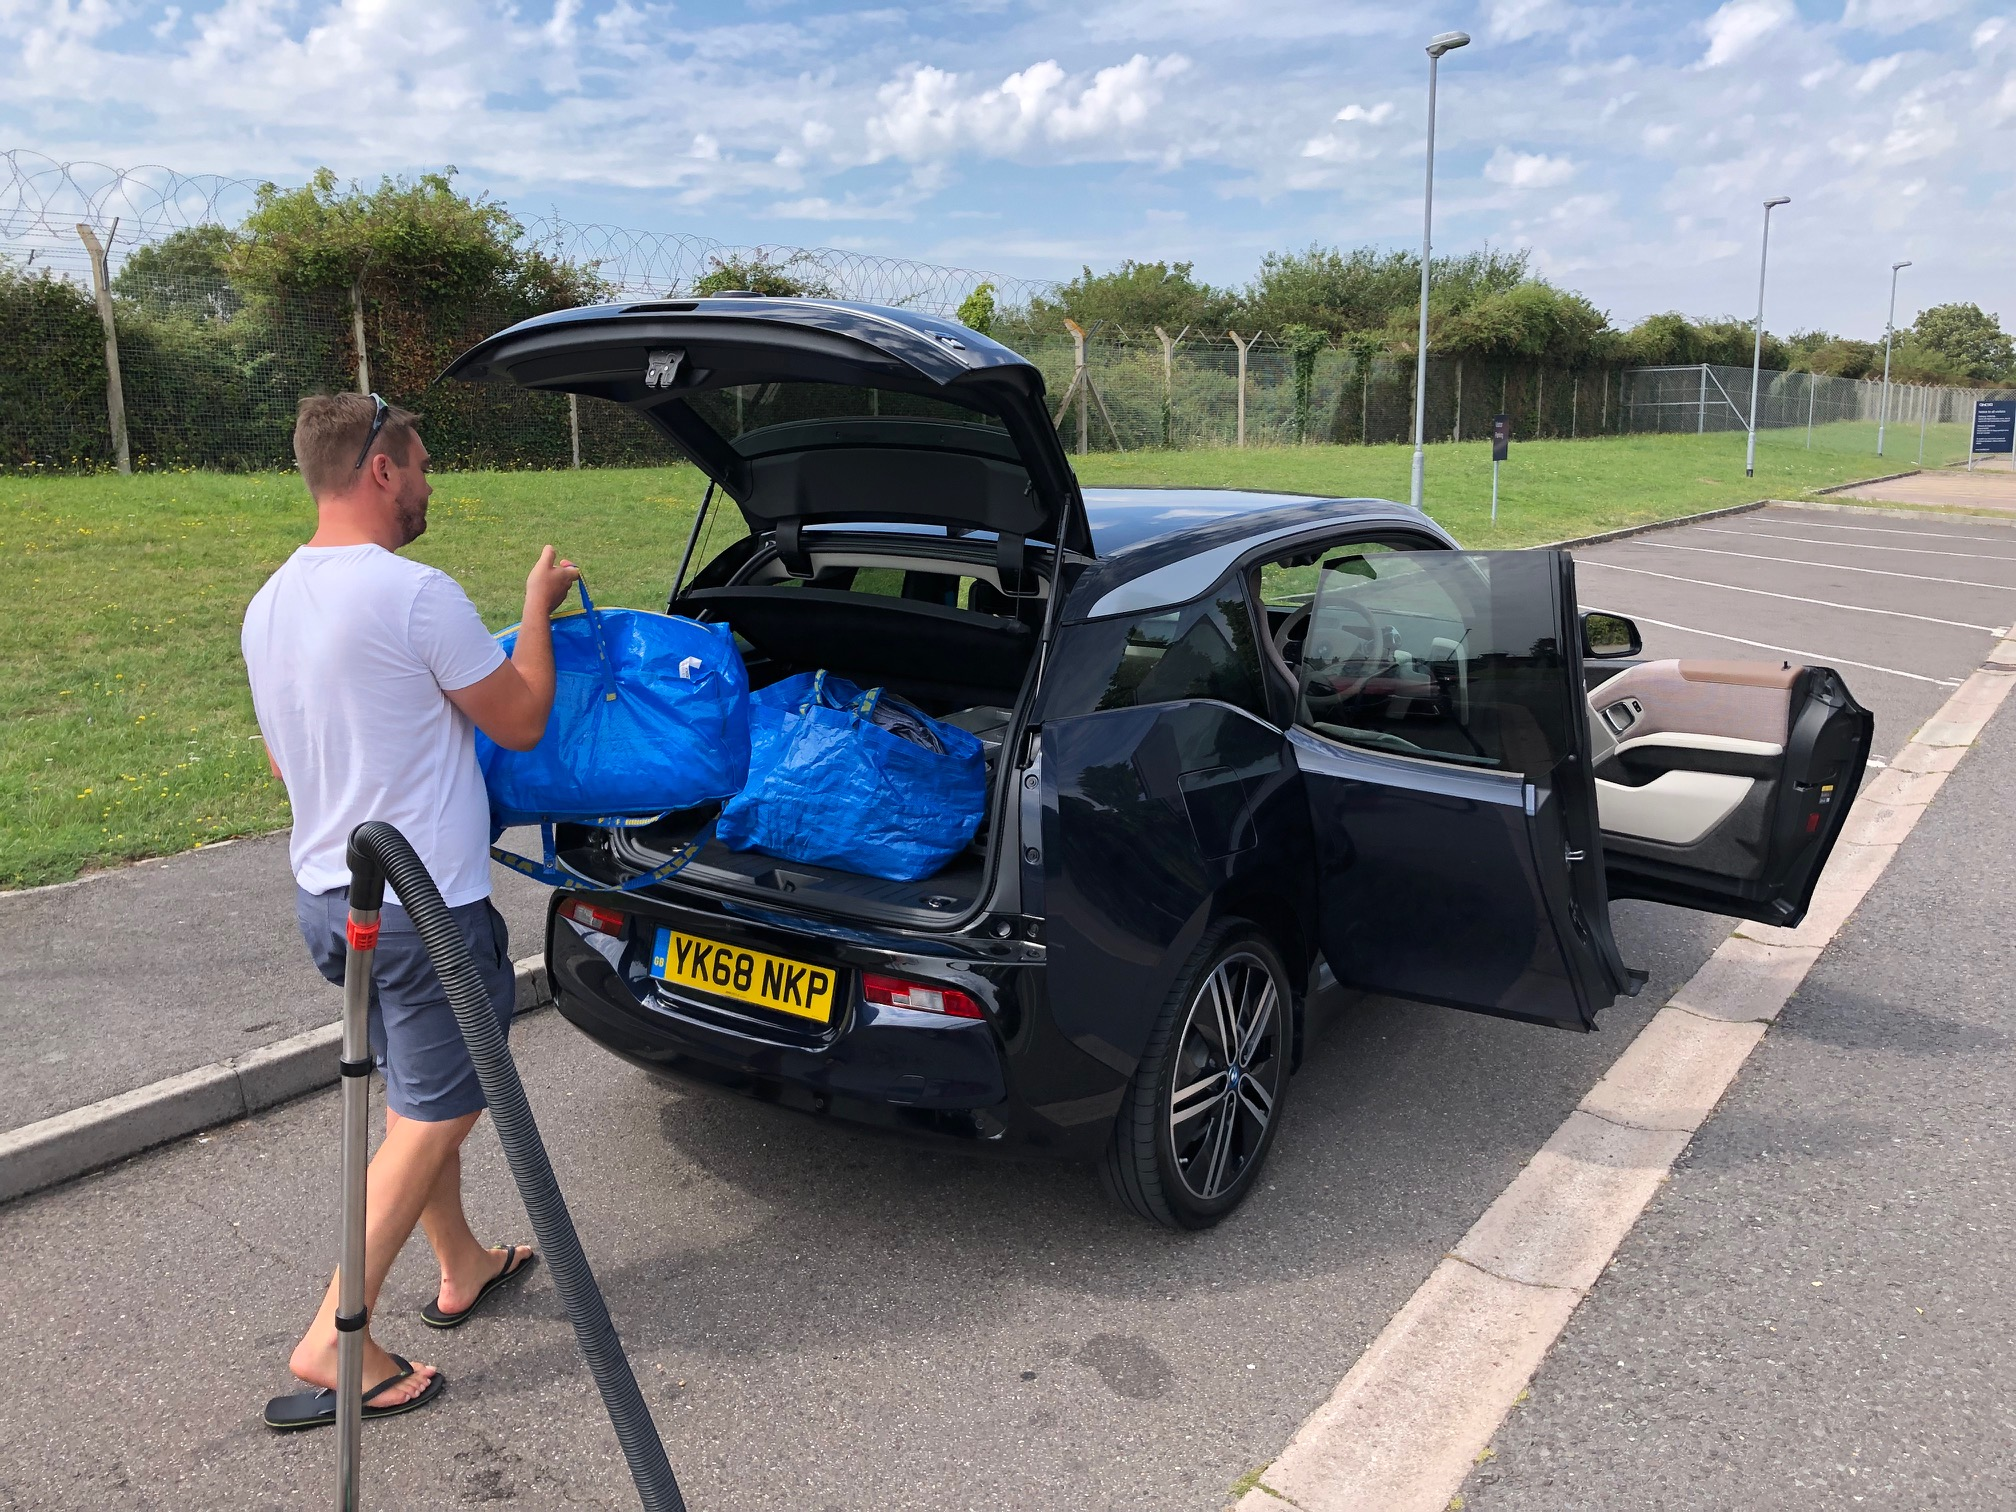 The i3 is an easy car to load up with luggage